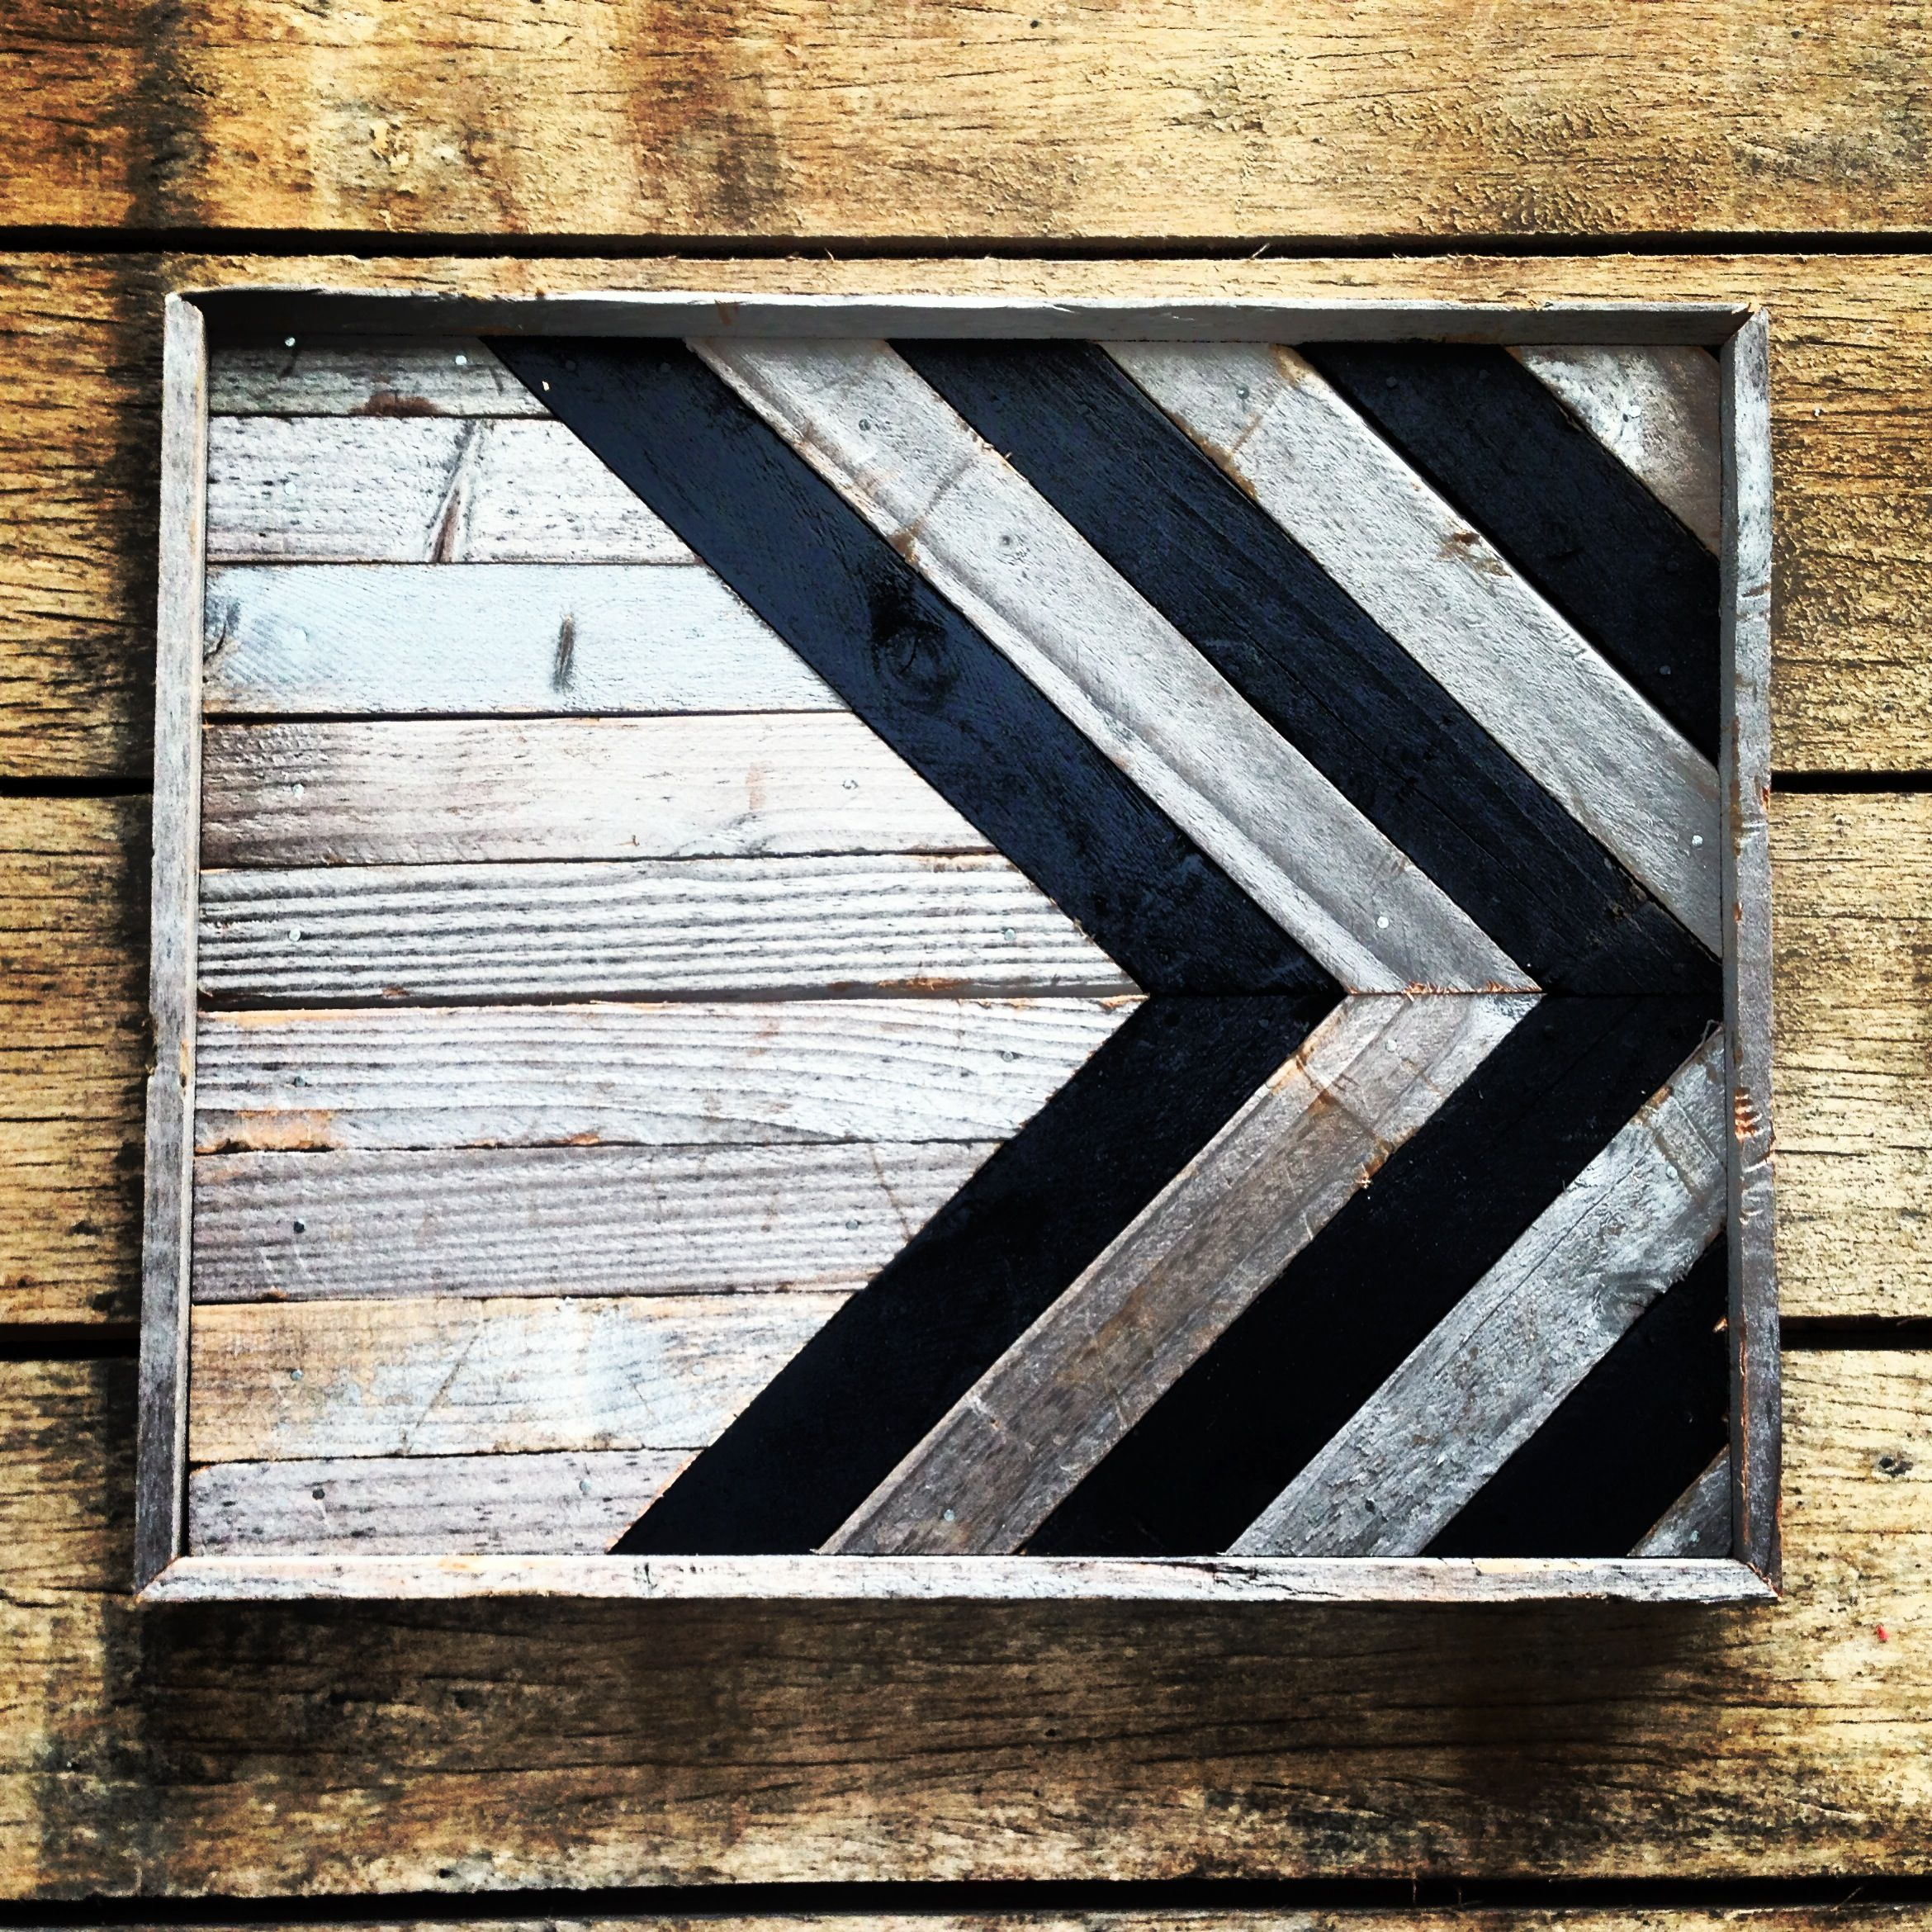 Reclaimed Wood Art Panel Crafts Pinterest